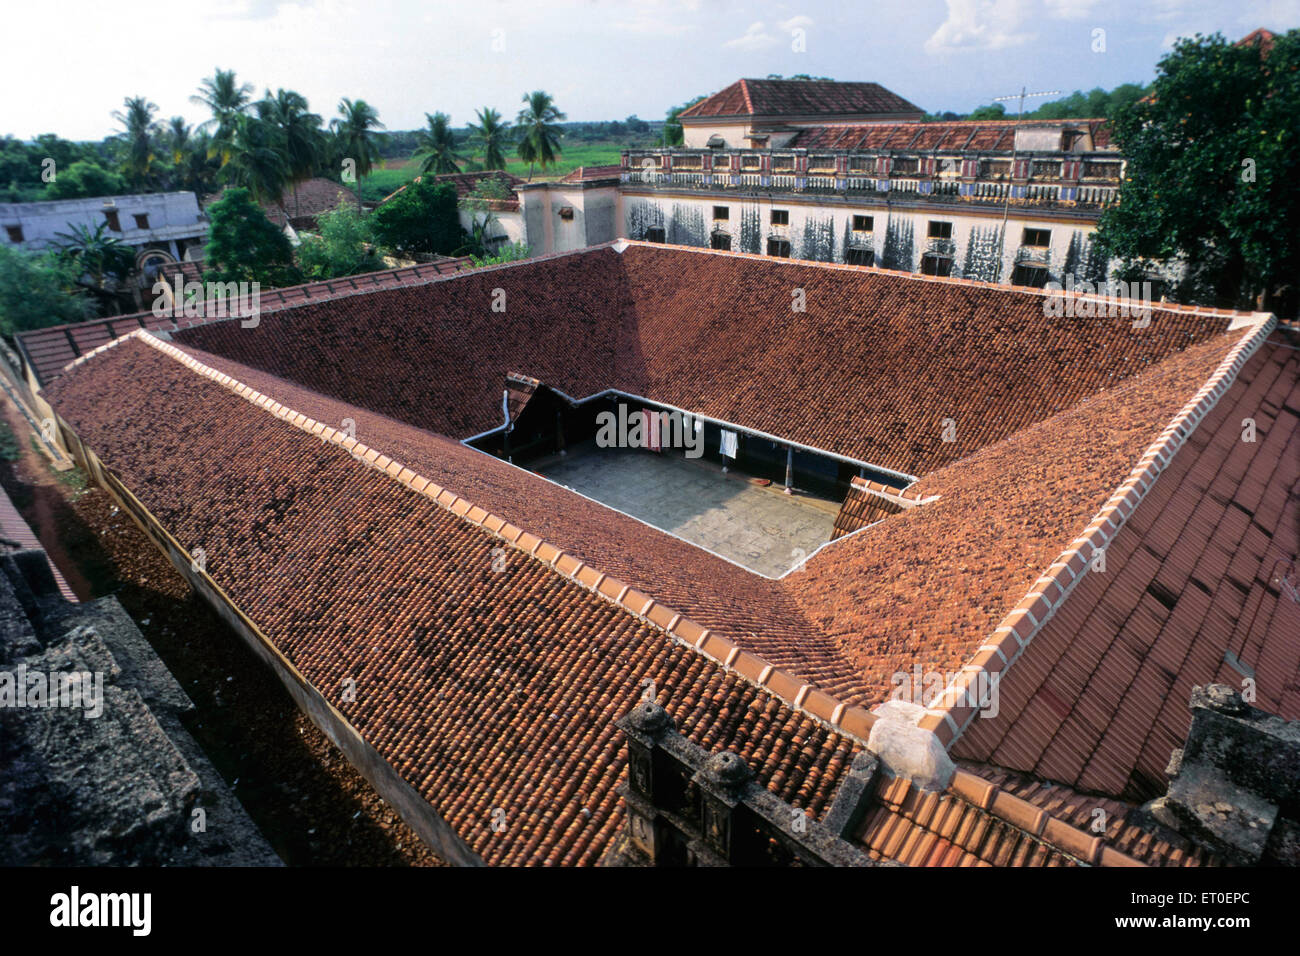 A birds eye view of a typical Chettinad village of mansions Tamil Nadu INDIA - Stock Image